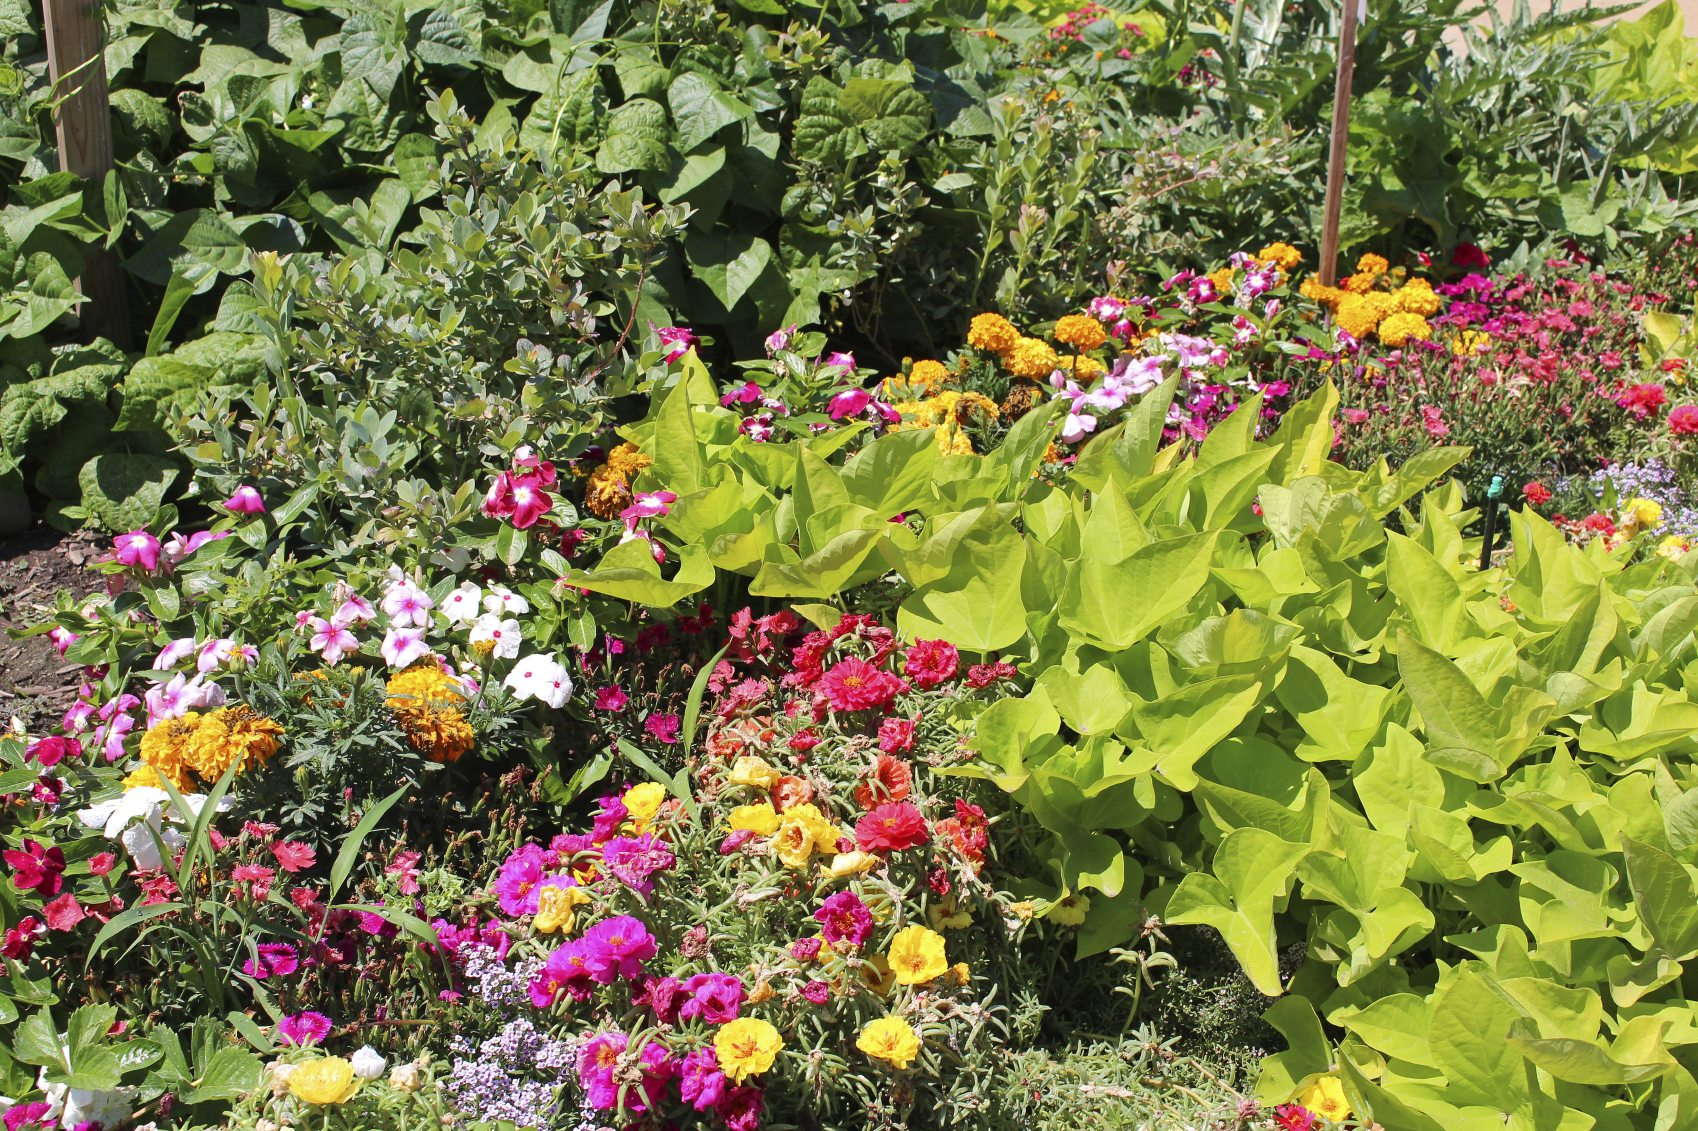 Vegetables in front lawns tips for planning a front yard for Vegetable and flower garden ideas